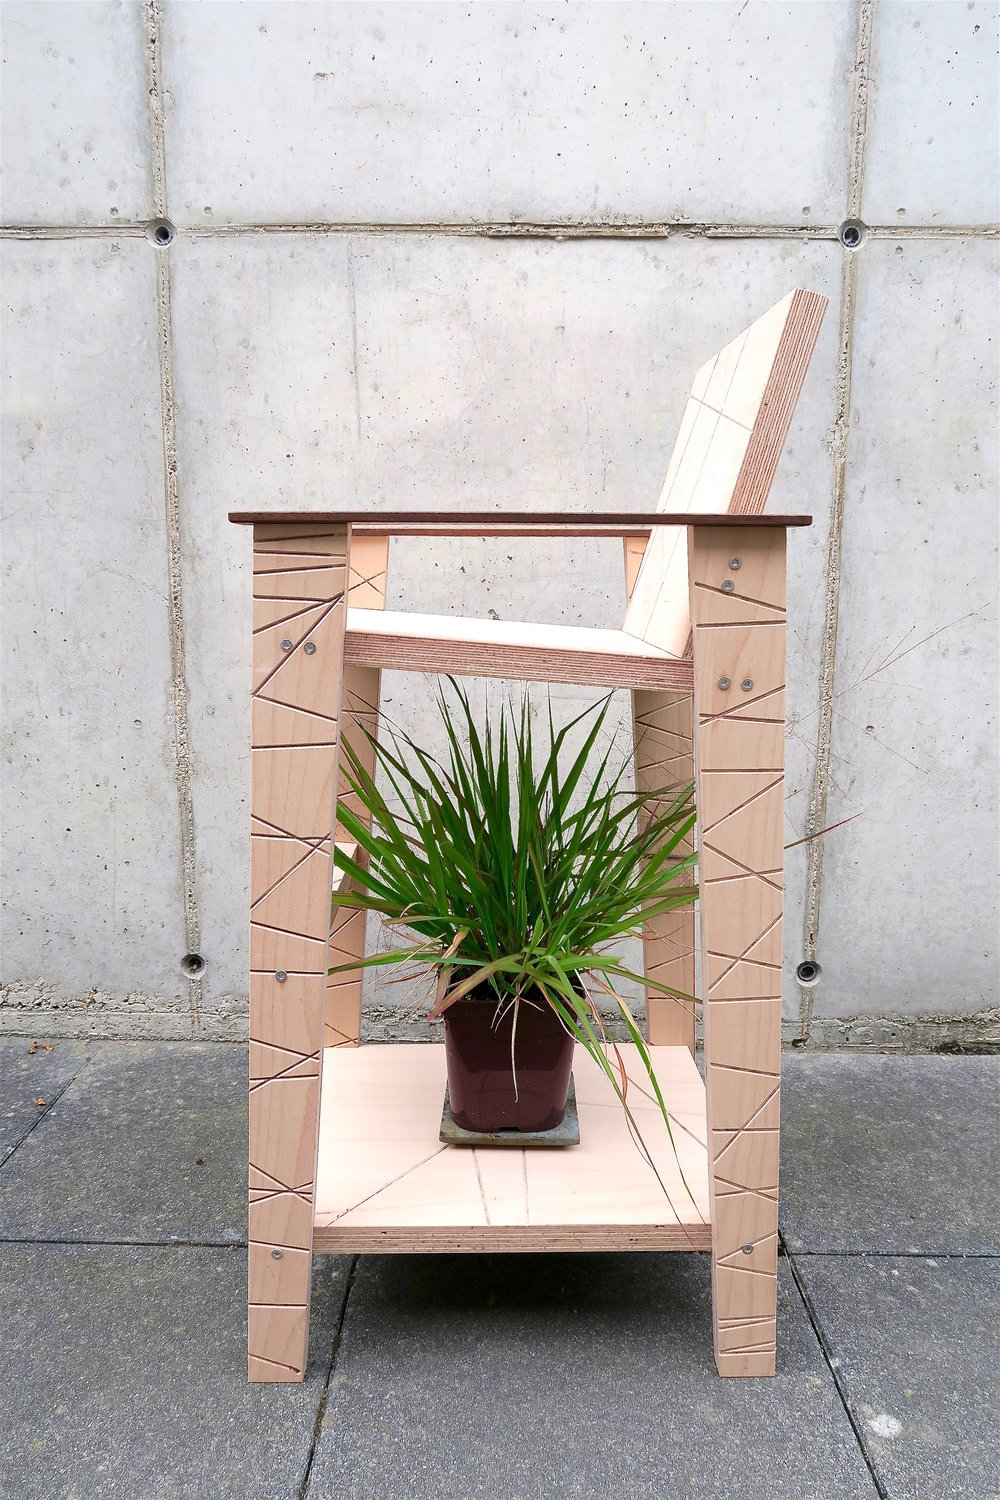 nitsn sustainable bespoke furniture, 2016.